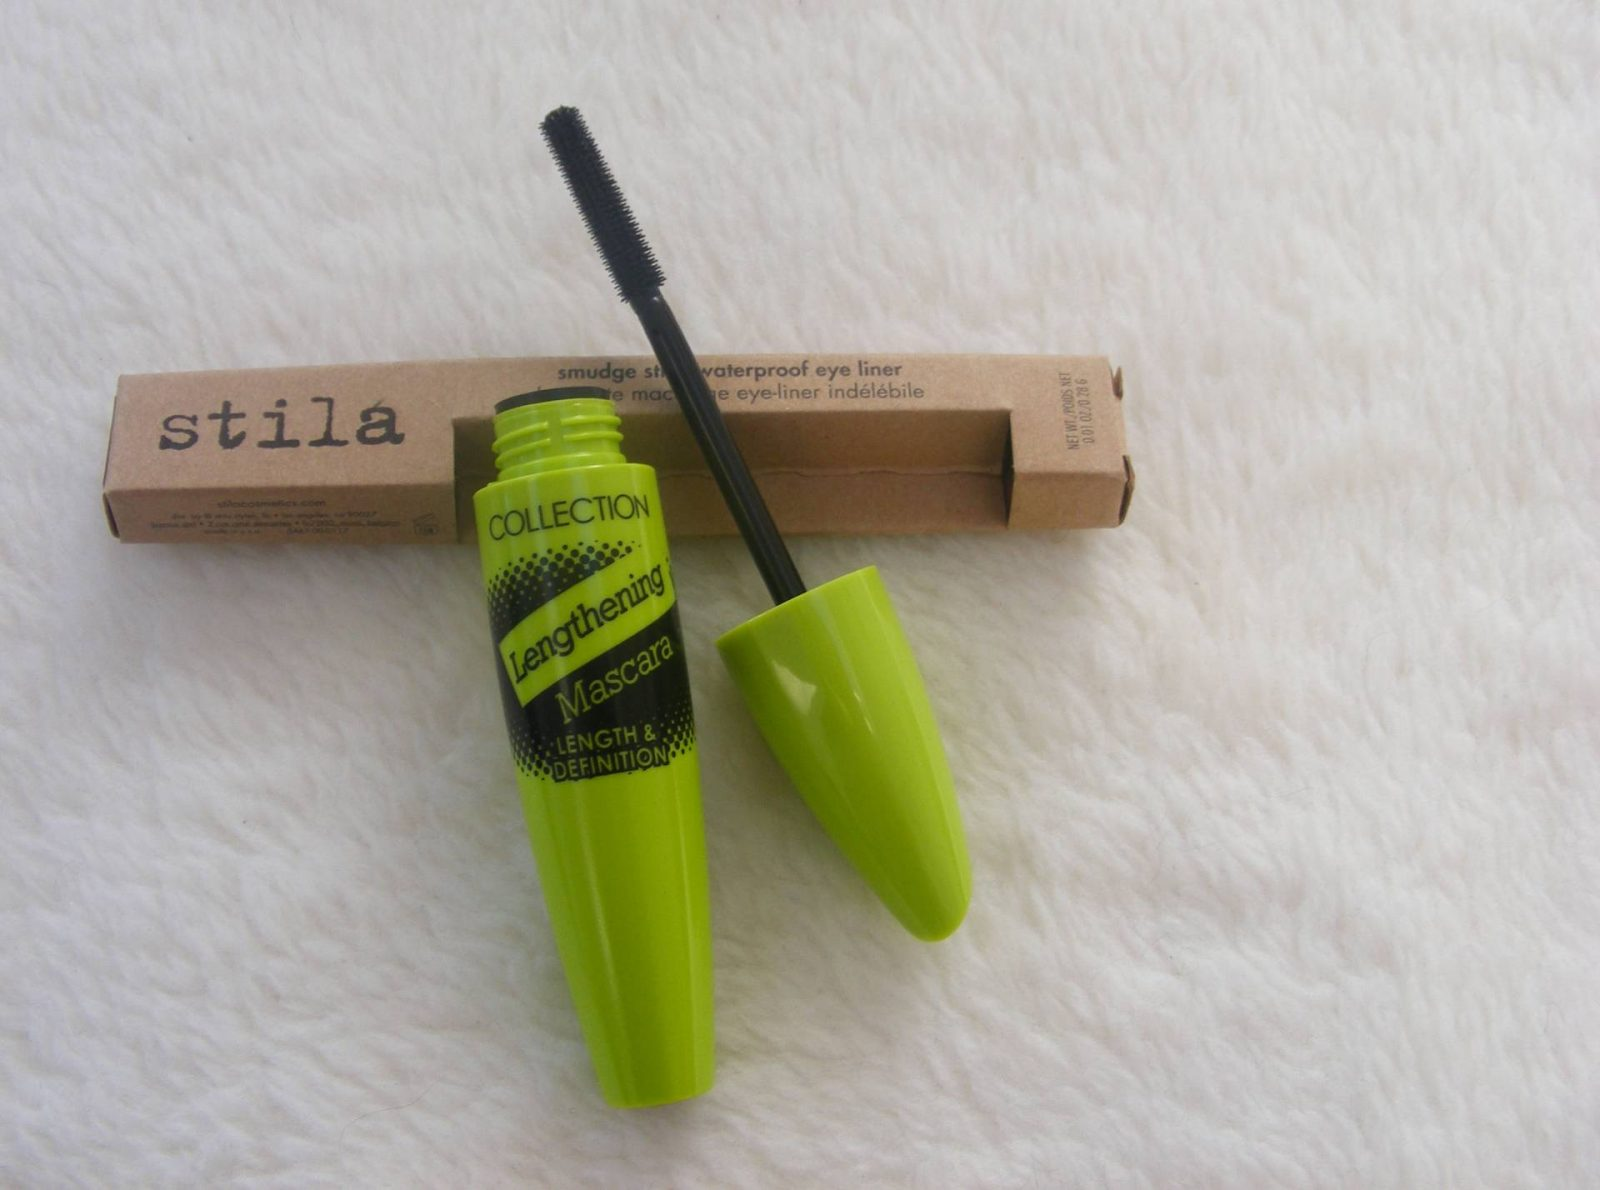 Stila eyeliner and Collection mascara